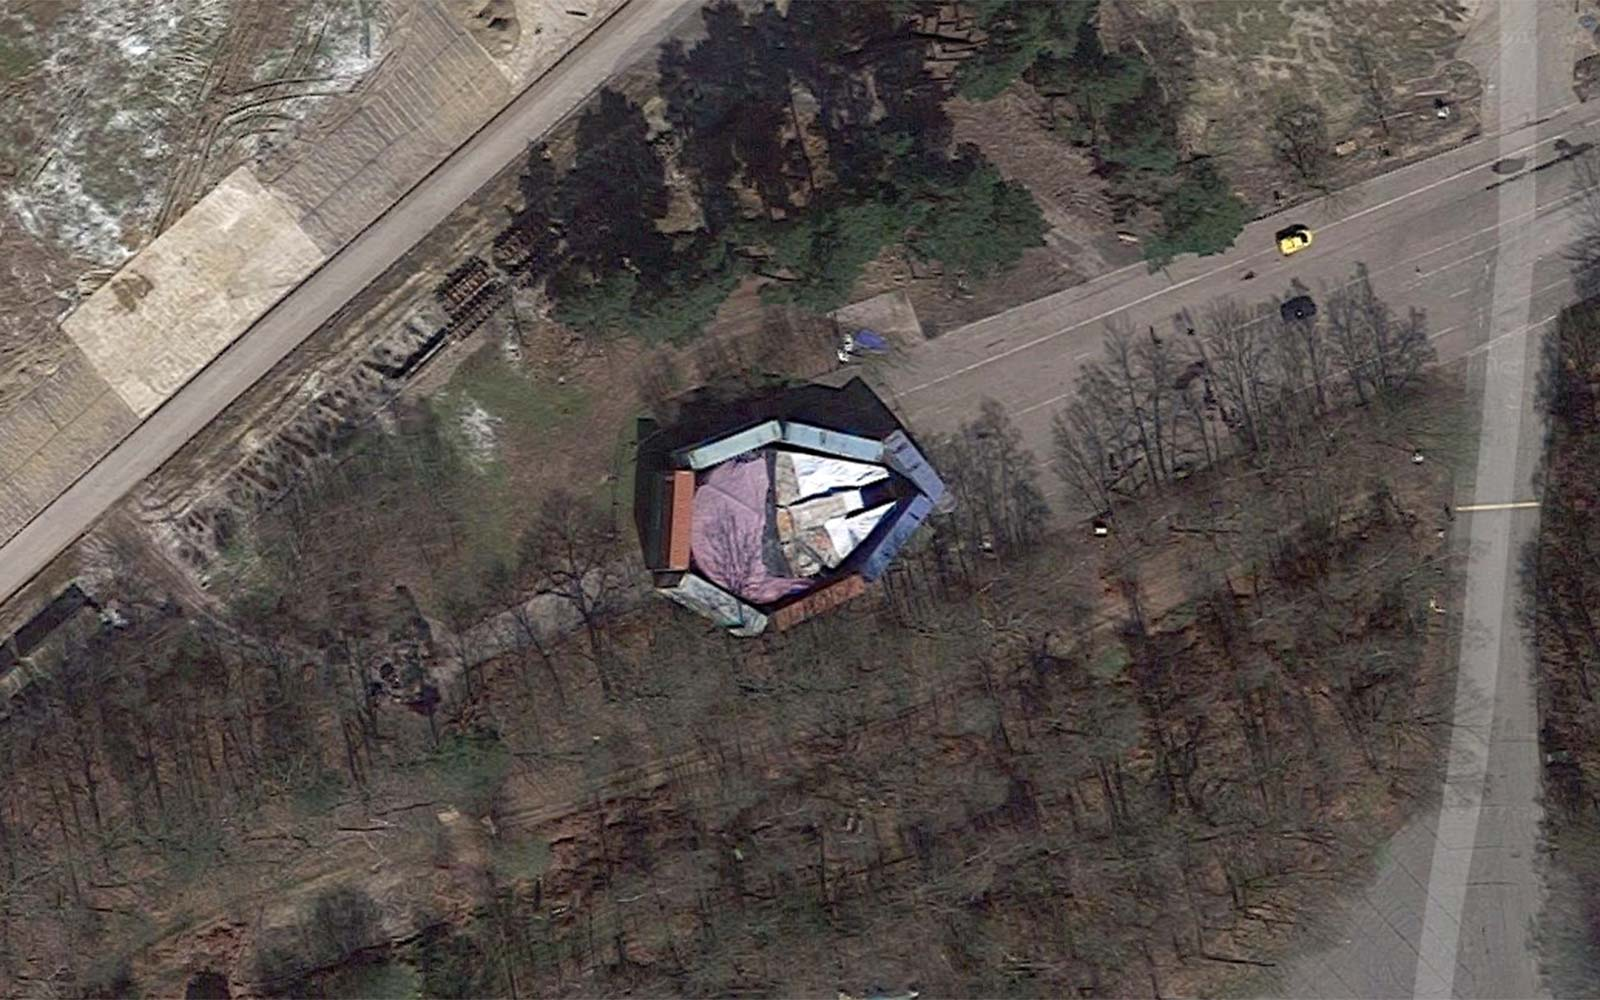 Disney Tried to Hide the Millennium Falcon Behind Shipping Containers but Someone Found It on Google Maps